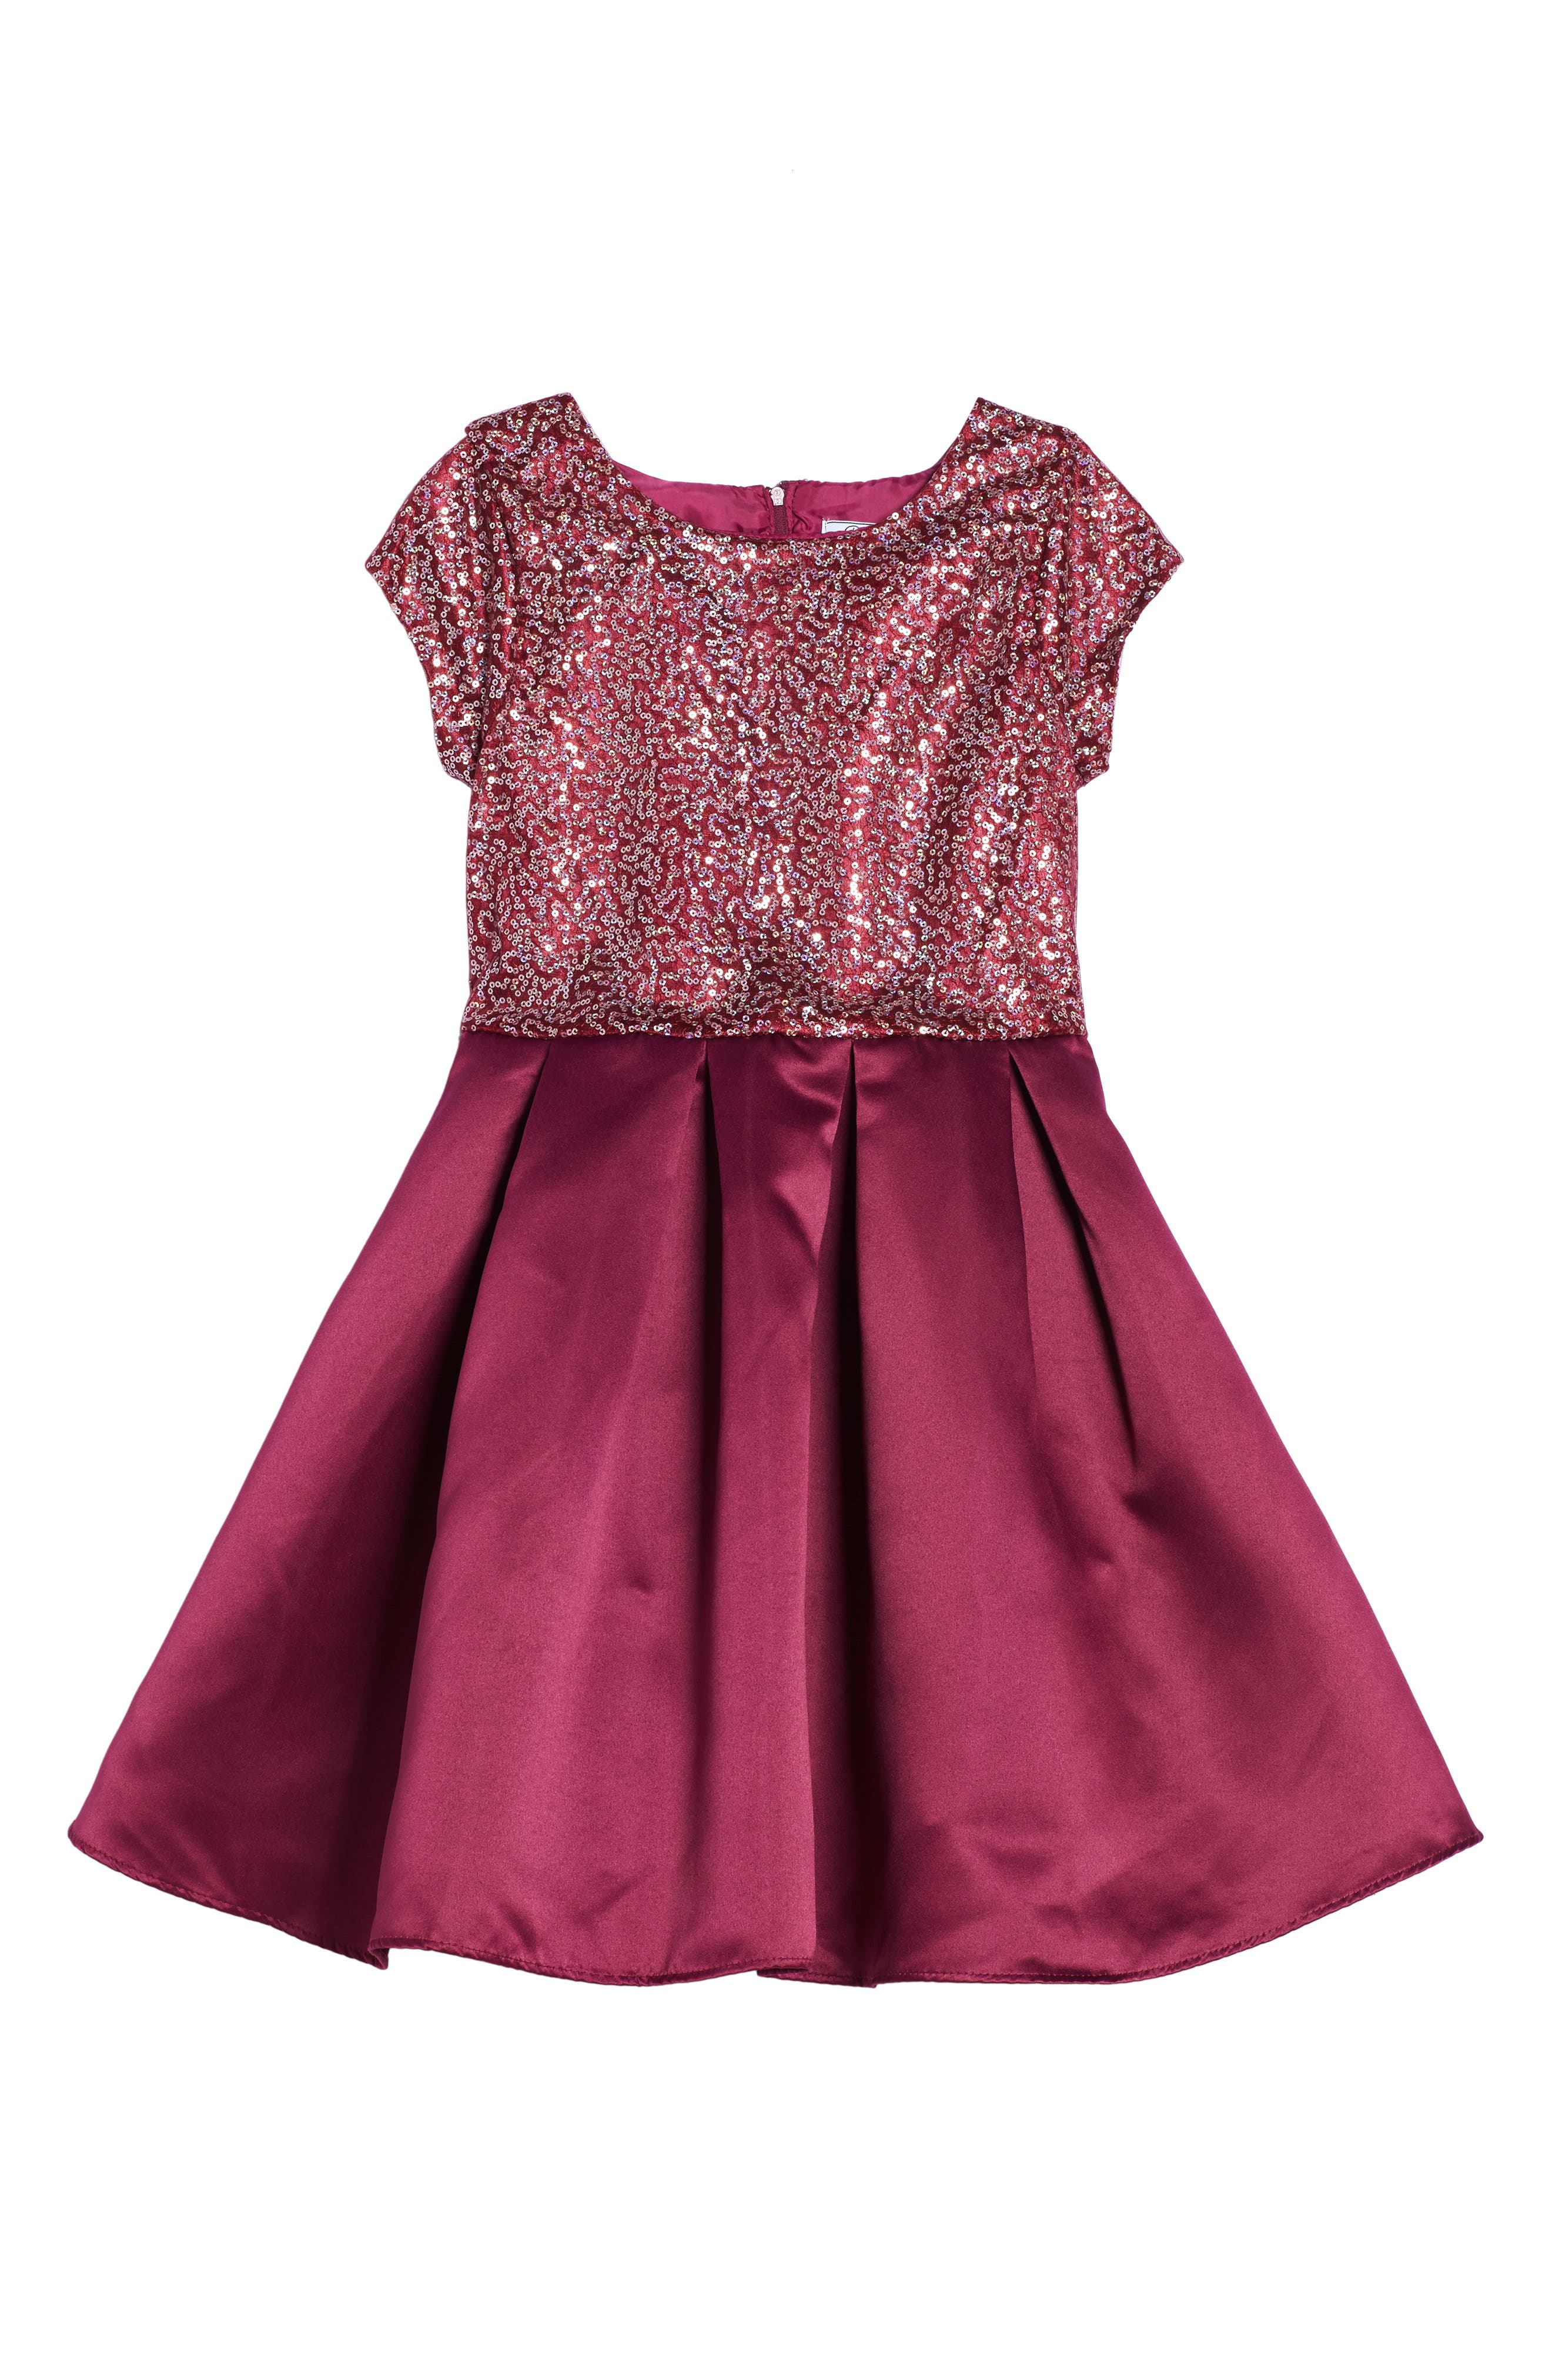 Dorissa Doris Sequin Embellished Dress (Big Girls)